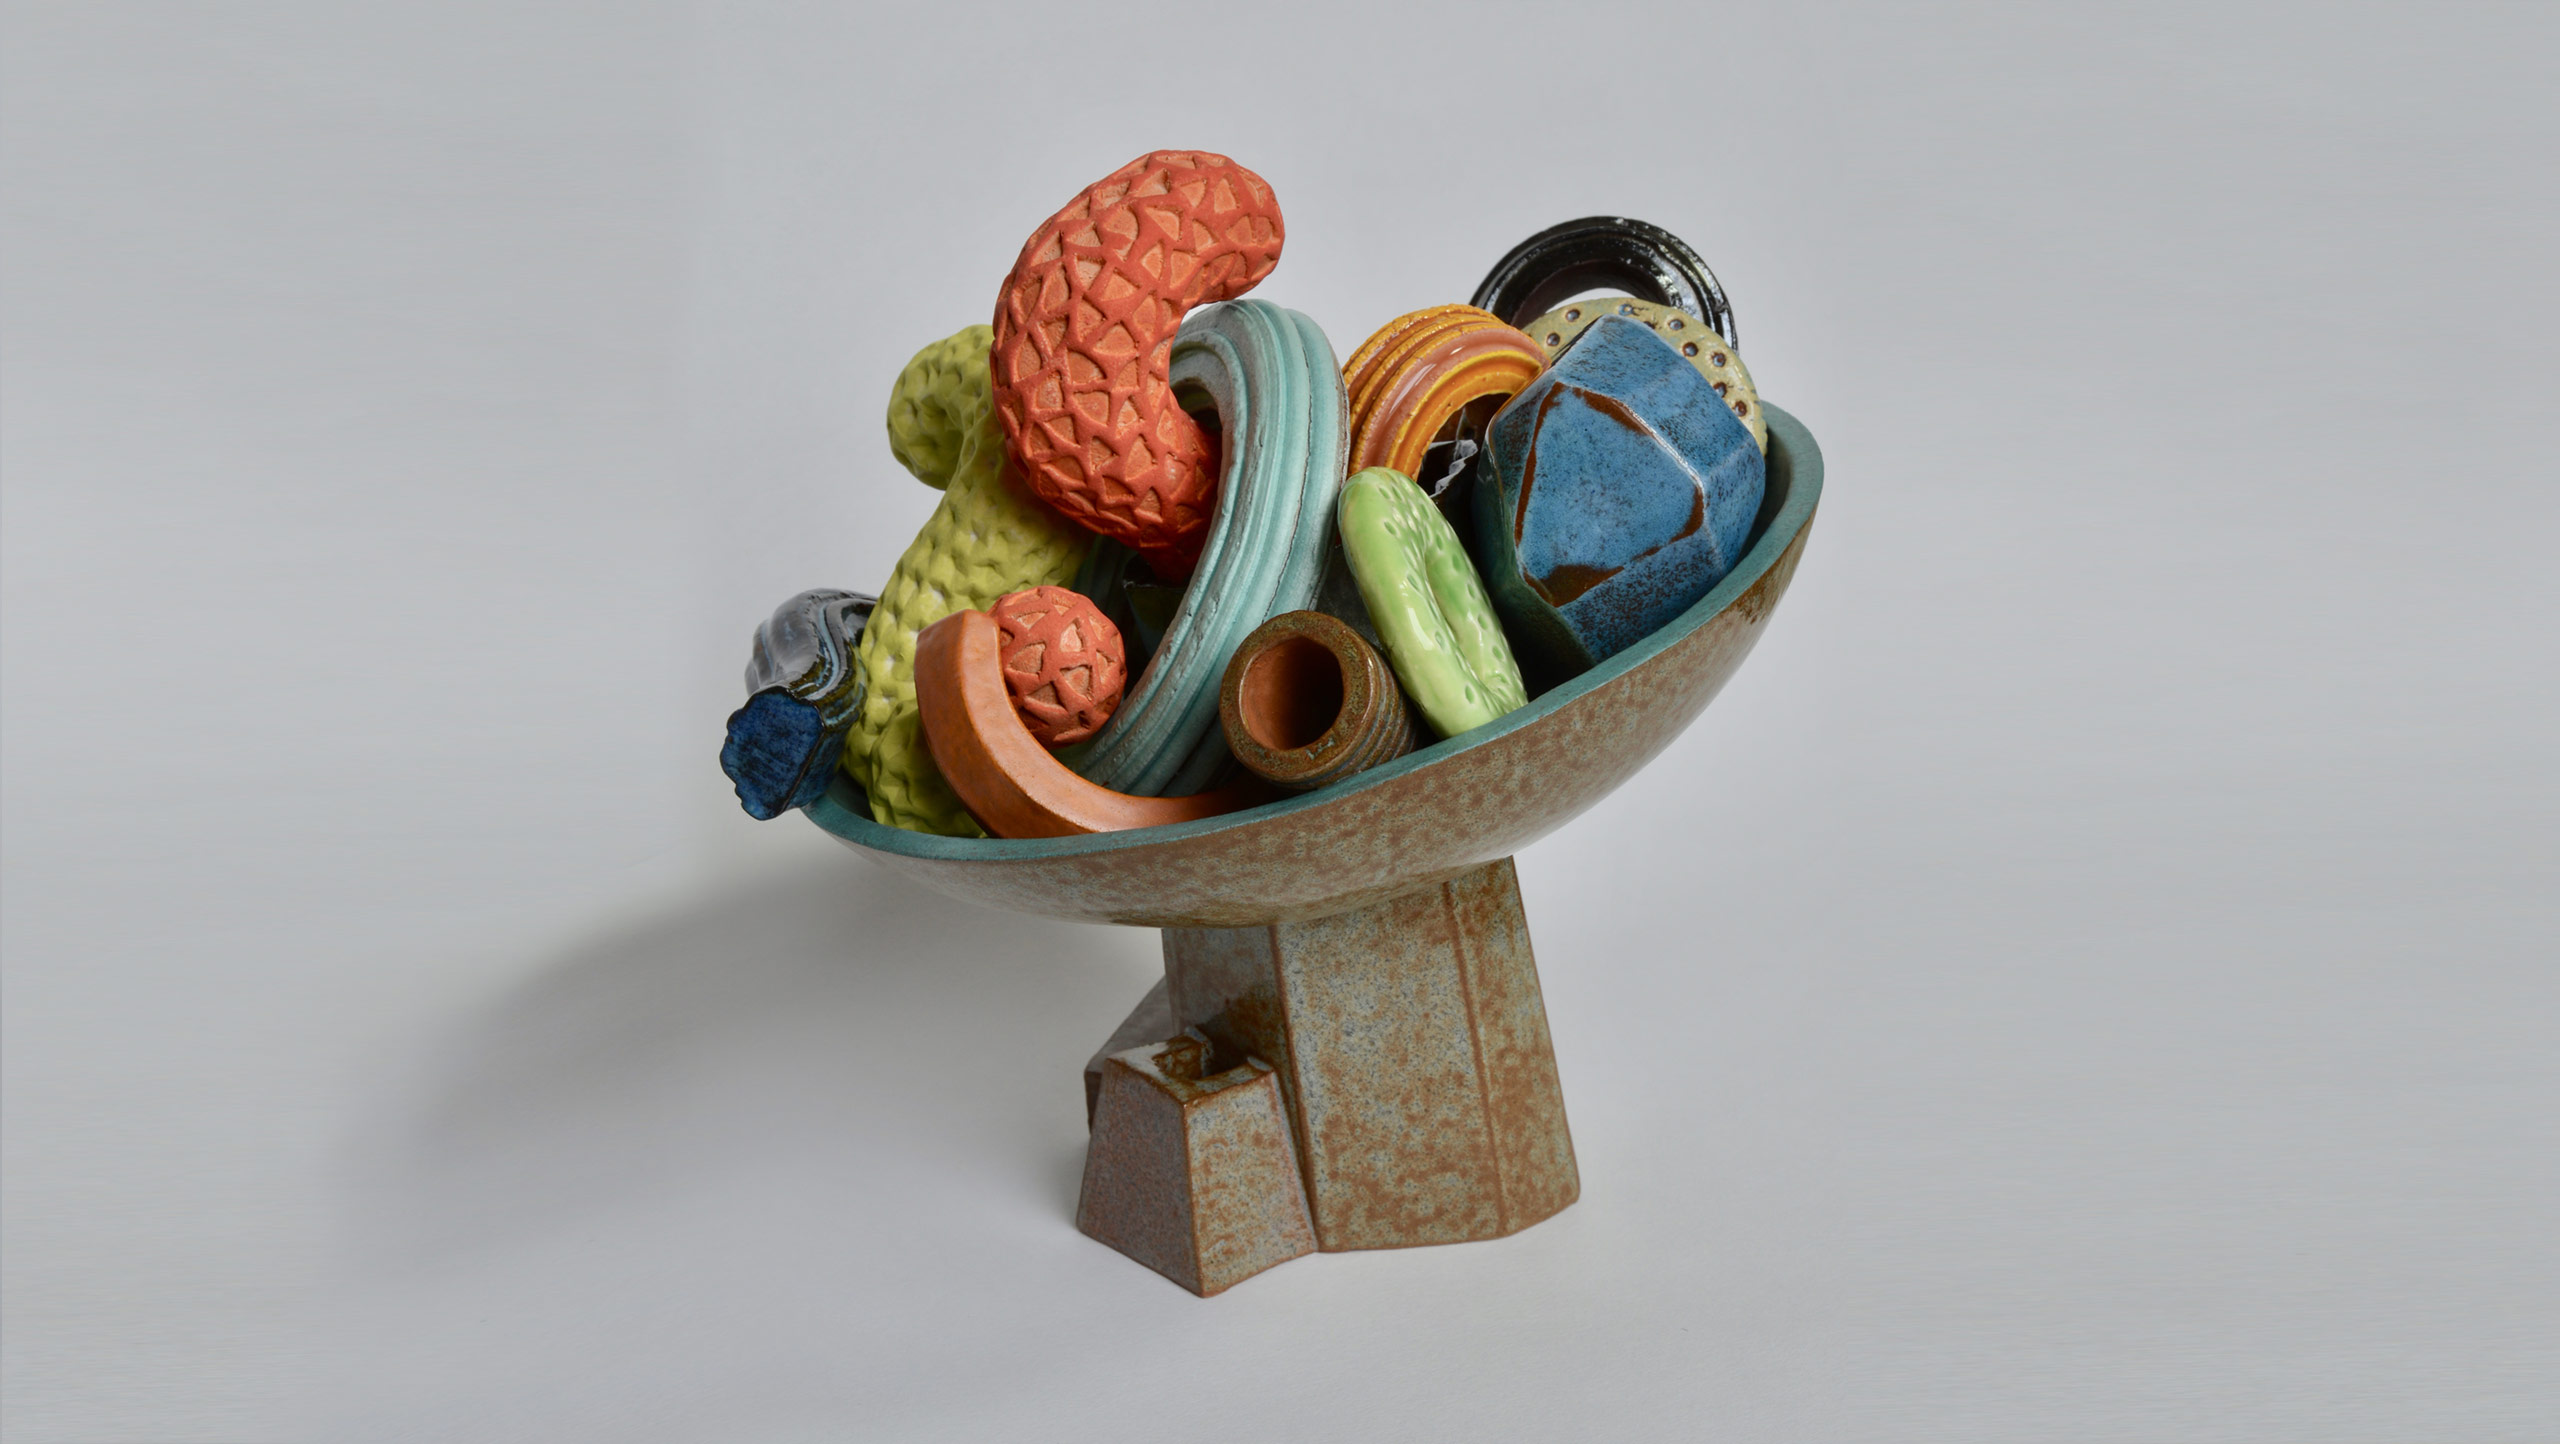 Cornucopia,a ceramic still-life, an assemblage of richly textured and coloured geometric and curvaceous objects